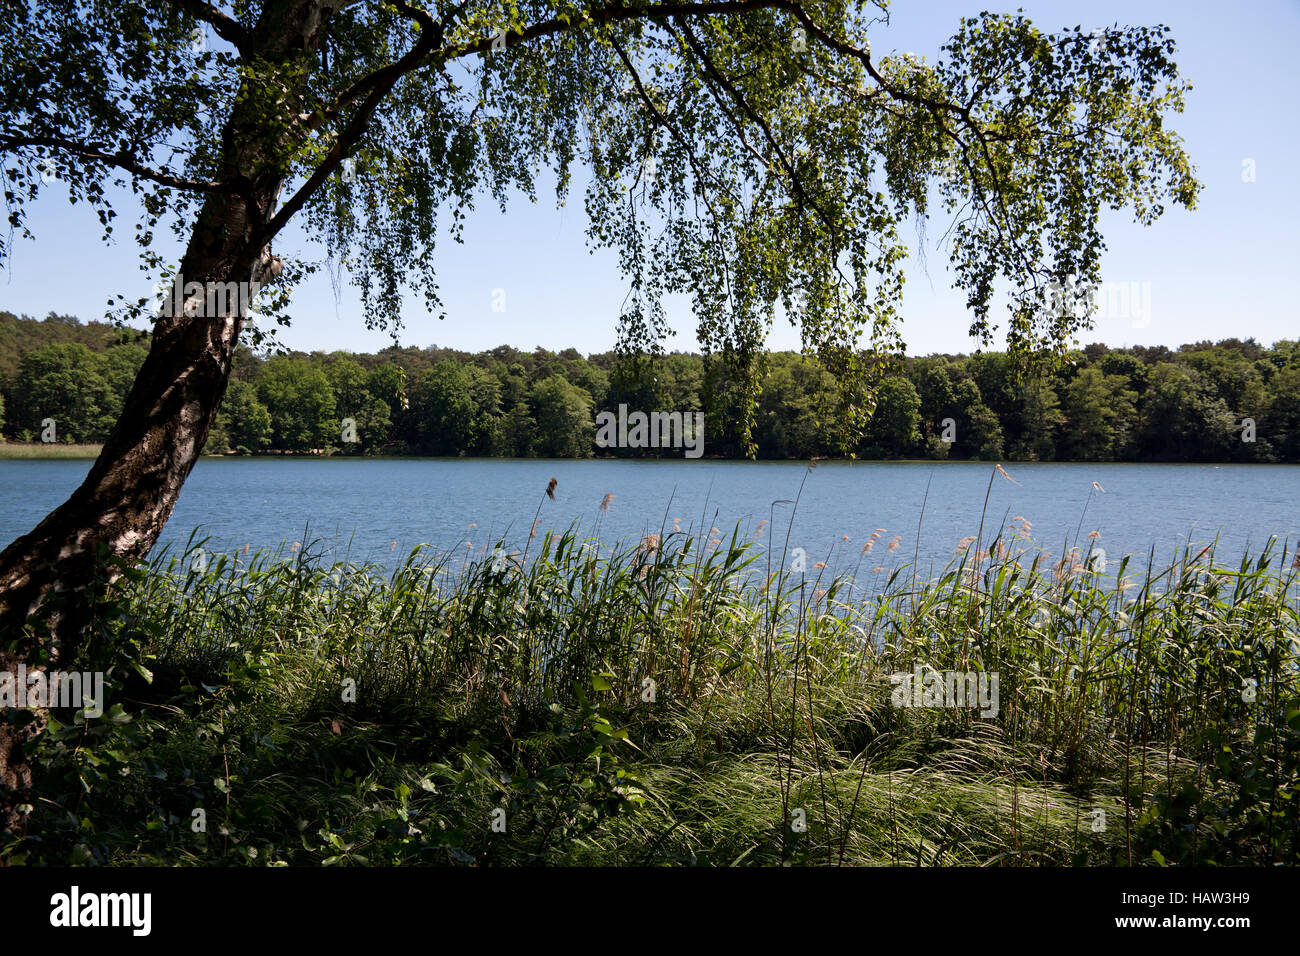 Schlachtensee 002. Germany Stock Photo